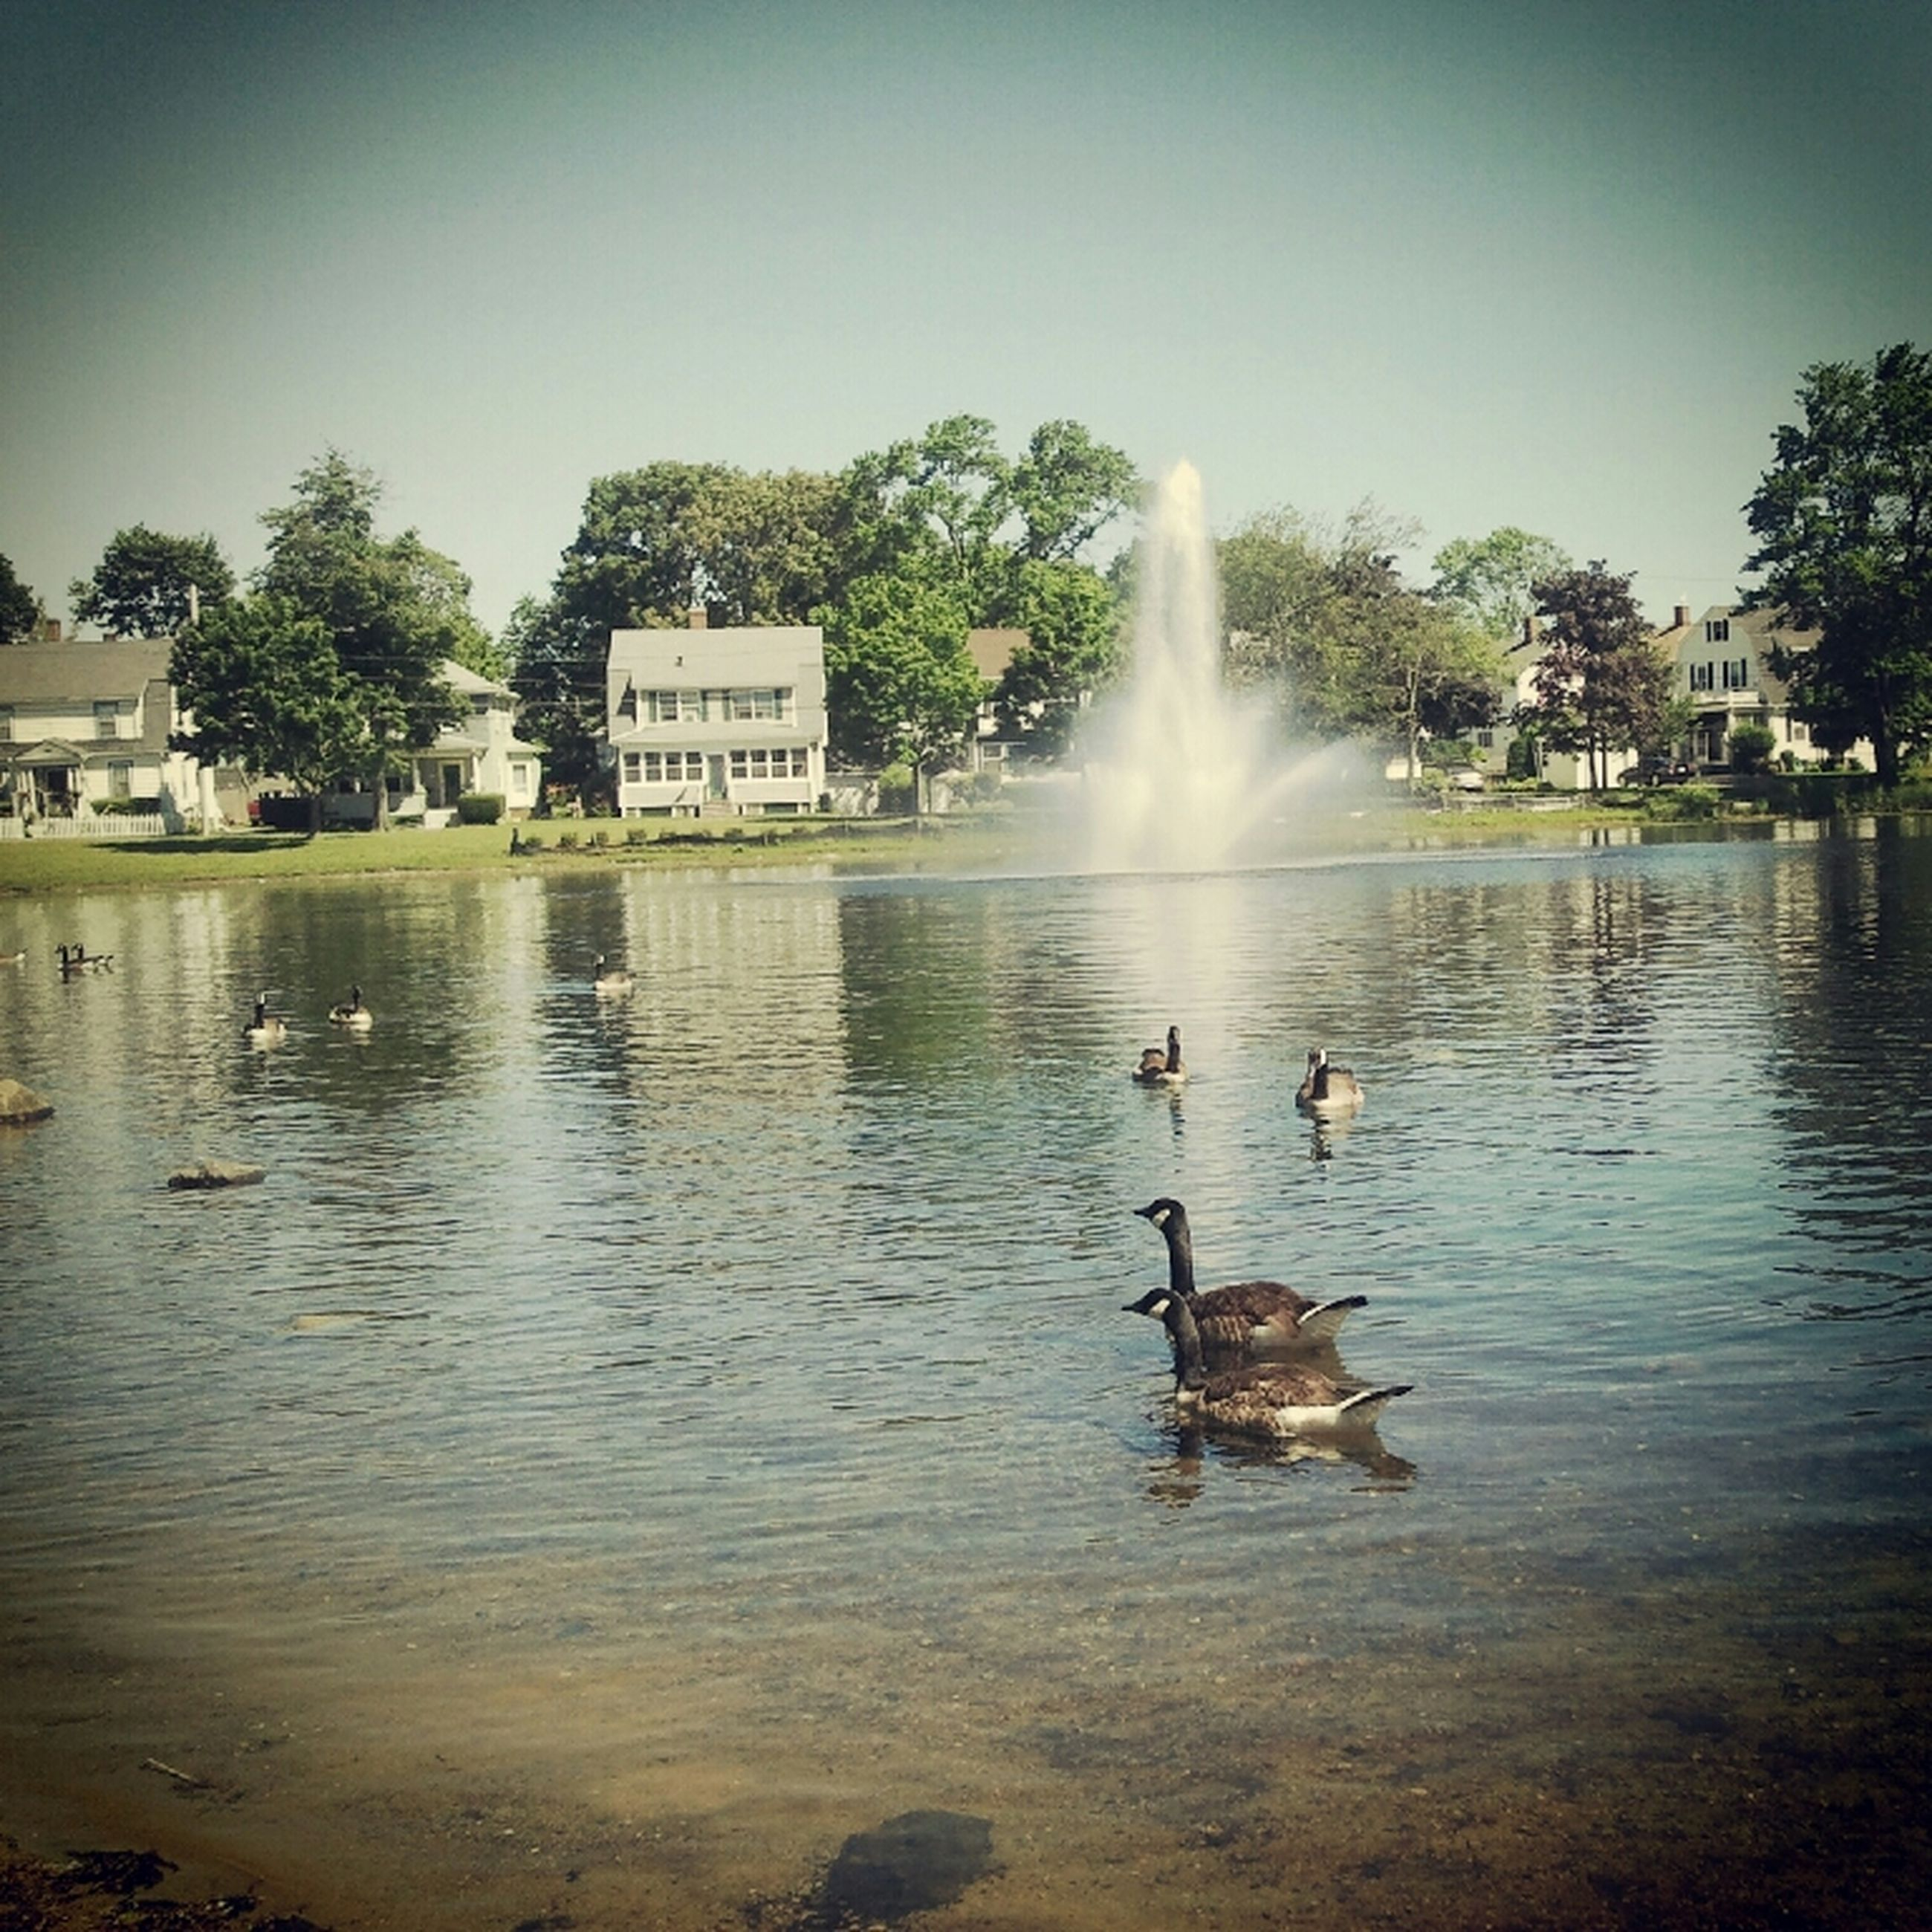 water, tree, bird, clear sky, reflection, animal themes, built structure, waterfront, lake, building exterior, architecture, nature, river, tranquility, wildlife, animals in the wild, tranquil scene, beauty in nature, scenics, swimming